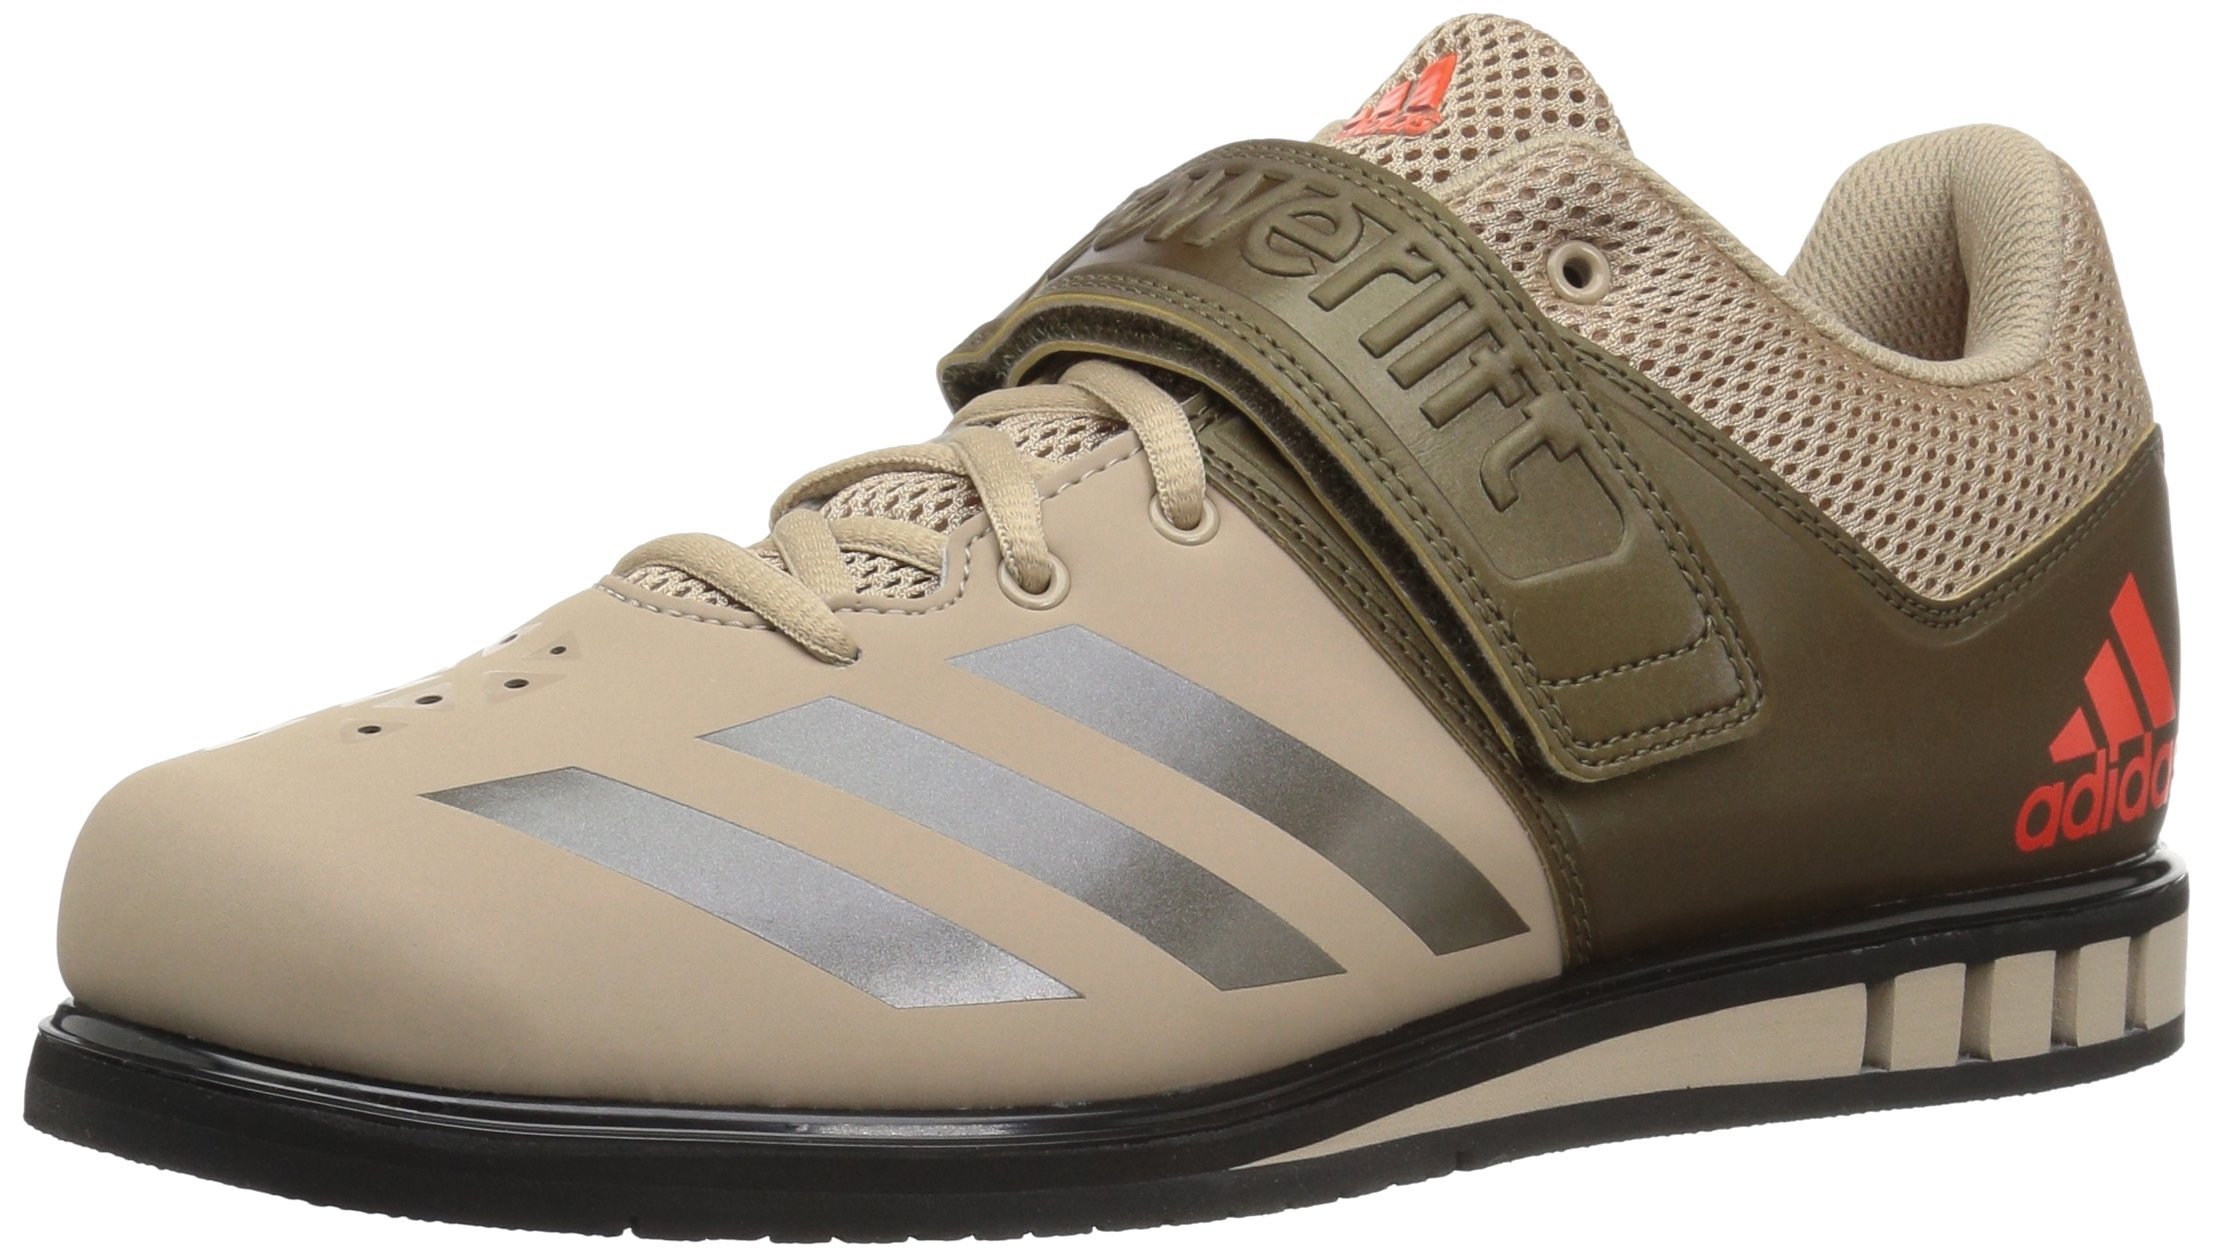 adidas Performance Men's Powerlift.3.1 Cross Trainer, Tech Beige/Trace Olive/Black, 10.5 Medium US by adidas